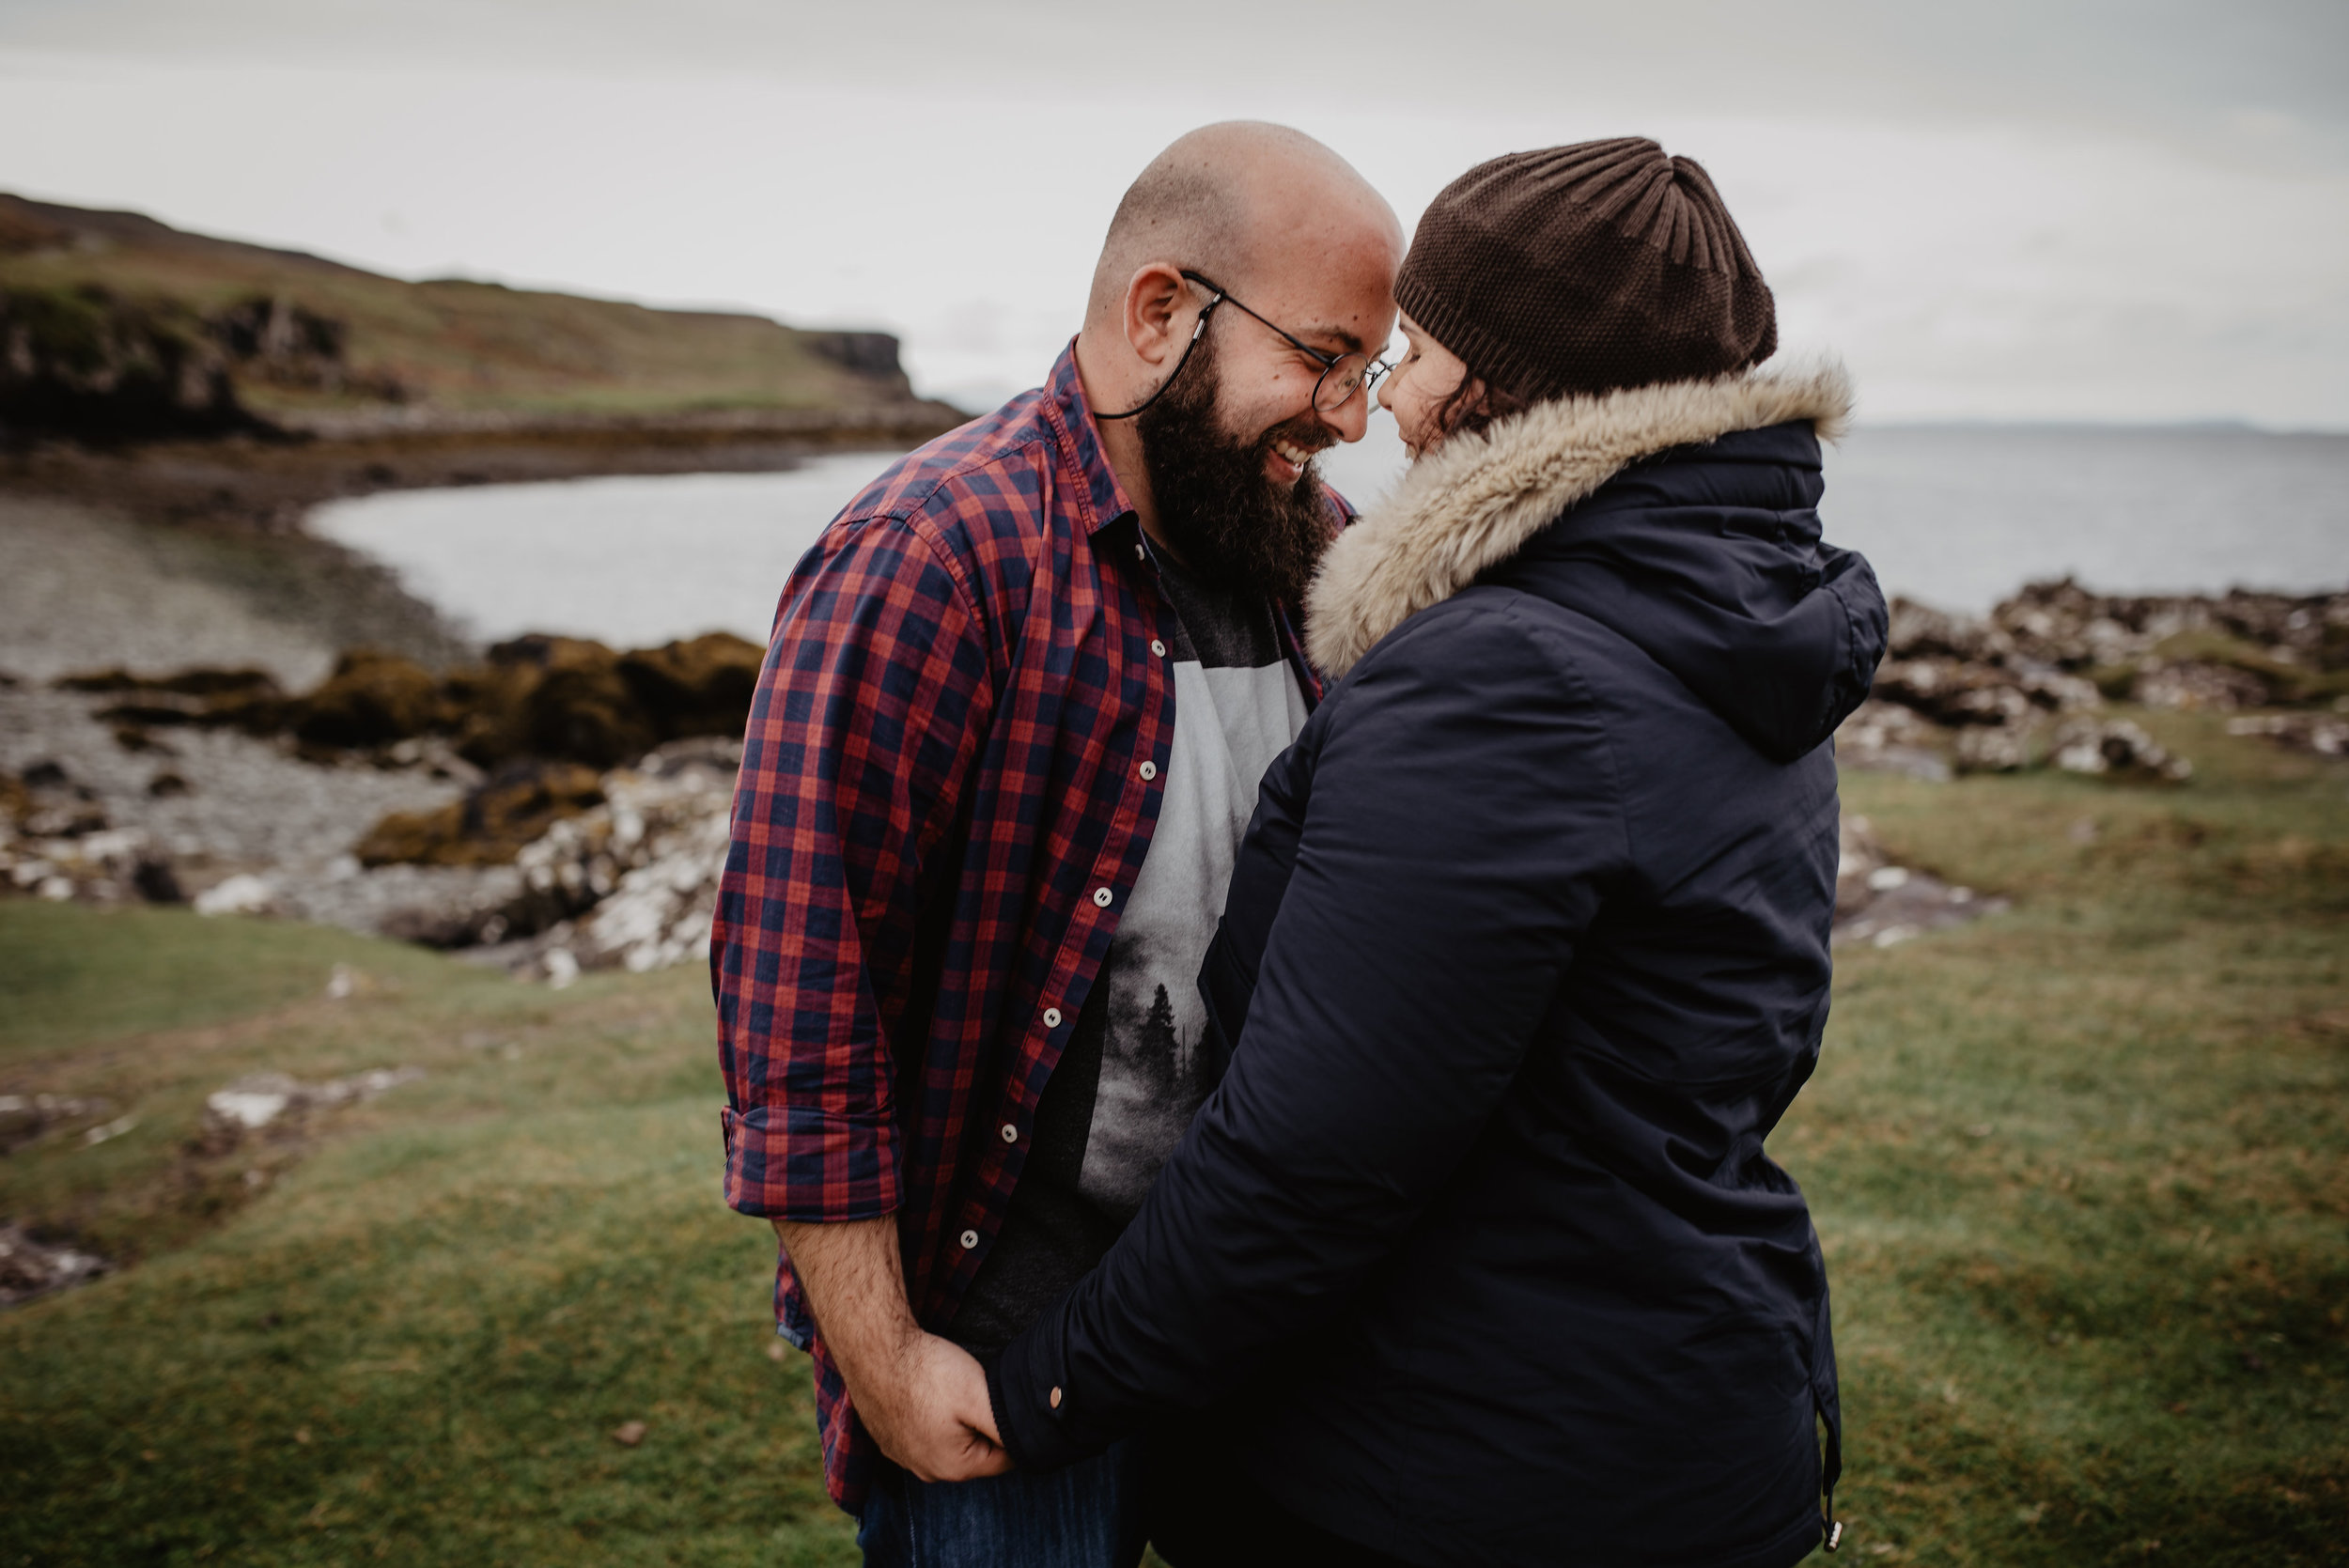 Lapela-photography-Isle-of-Skye-elopement-BTS-25.jpg